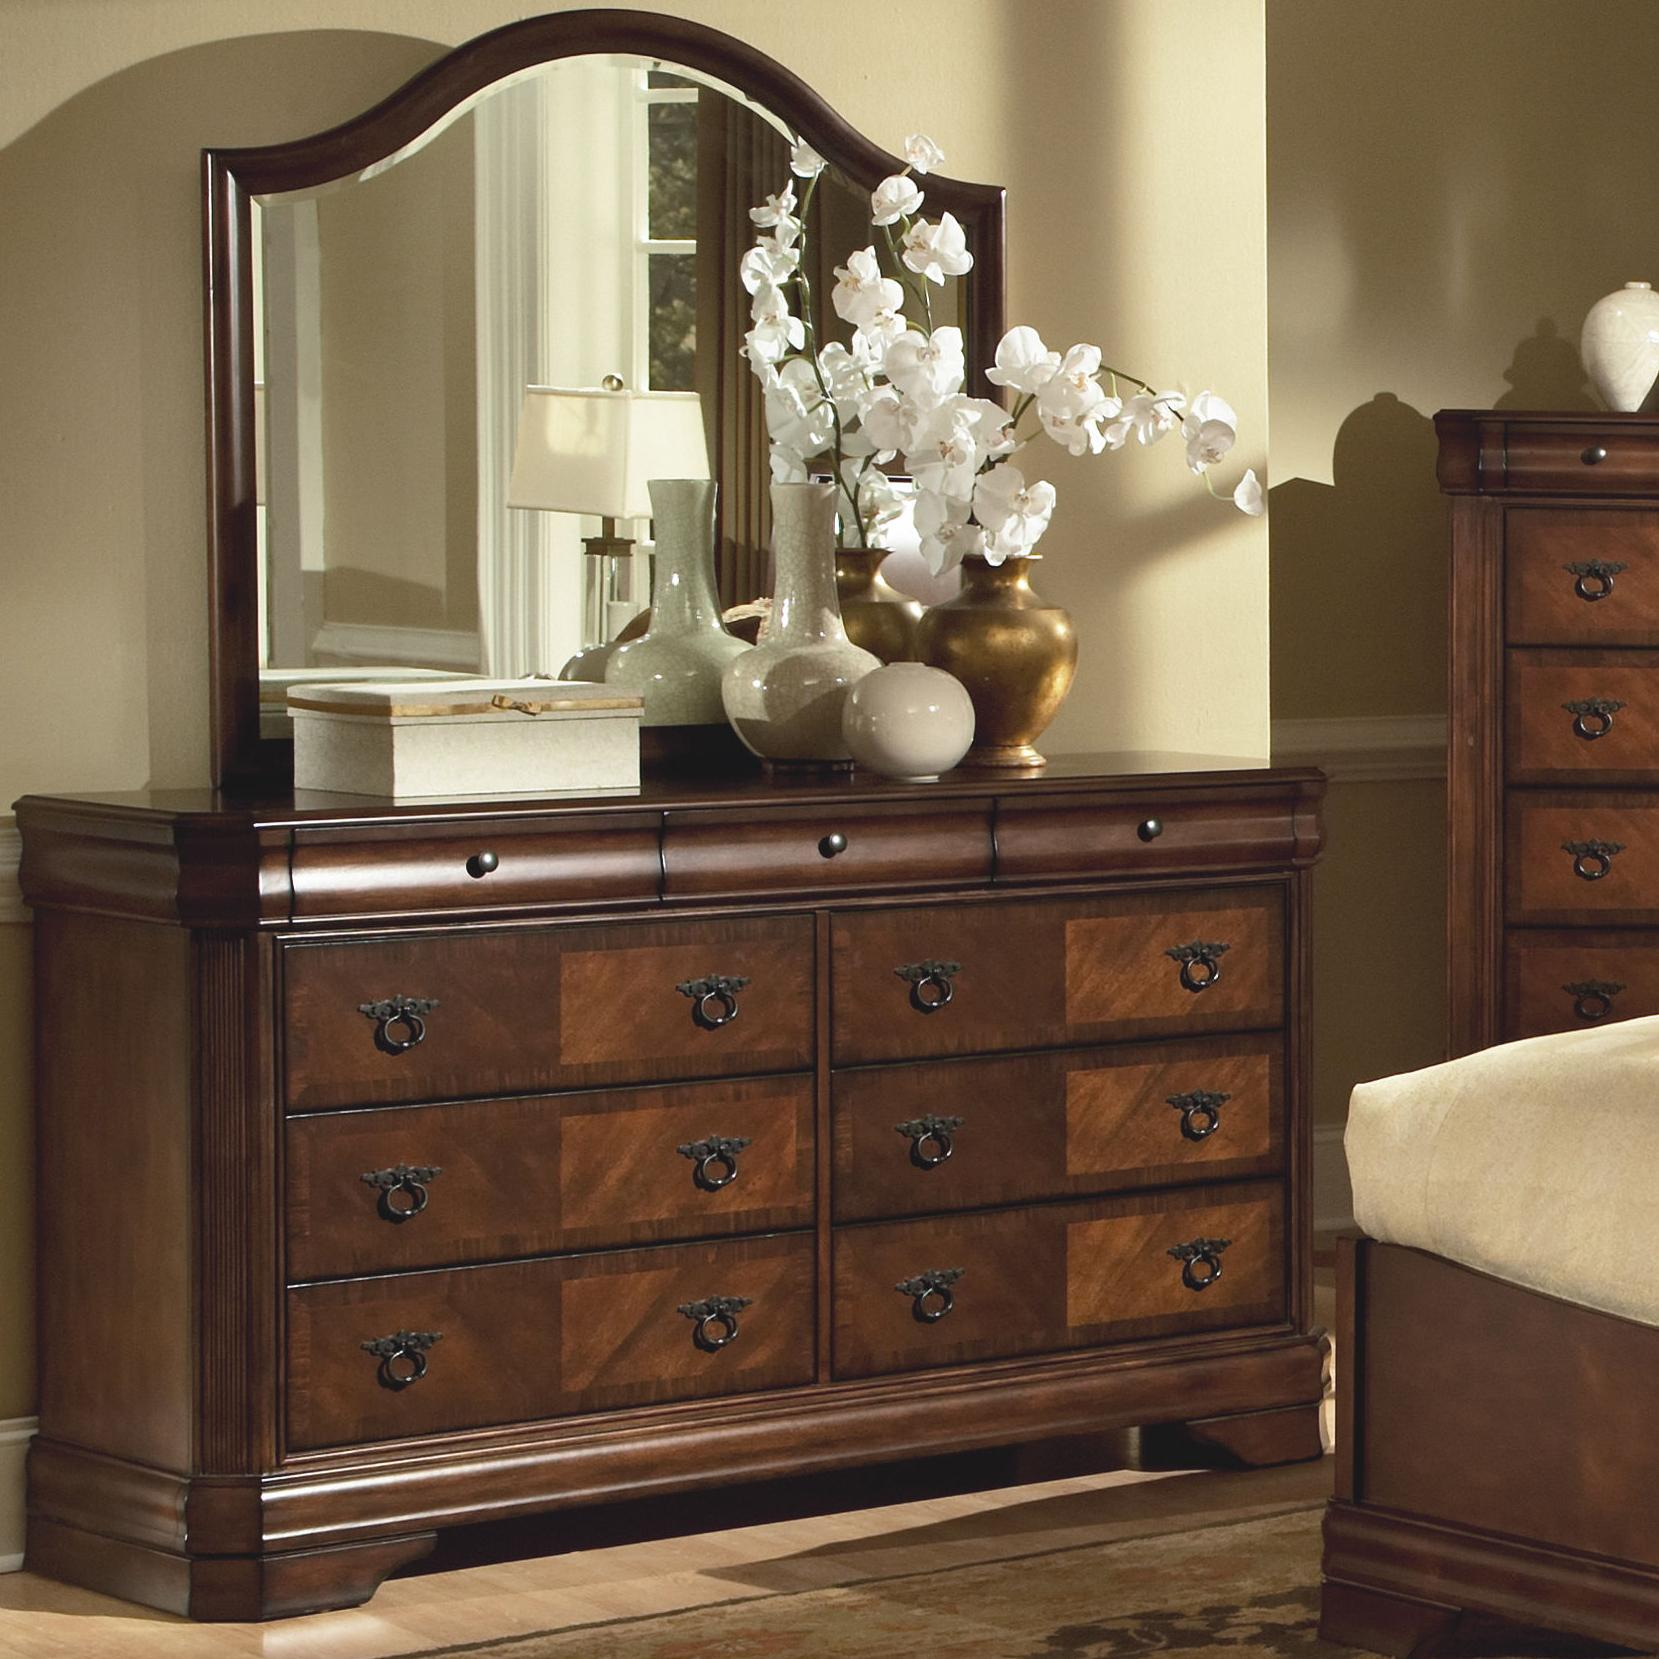 New Classic Sheridan Dresser and Mirror - Item Number: 00-005-050+60